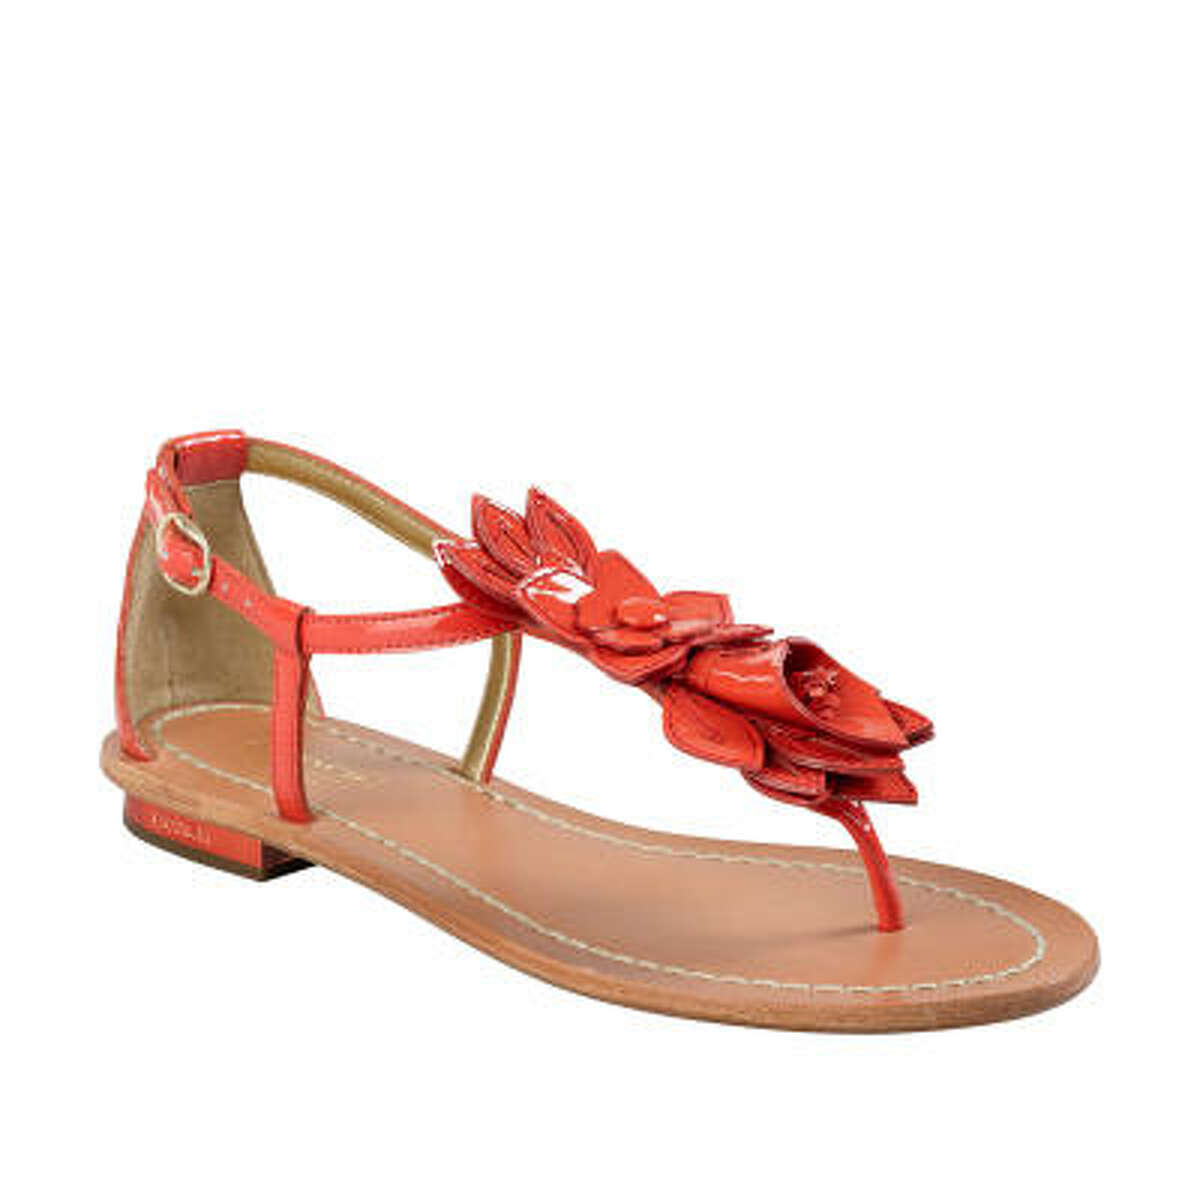 Flowers add a spring touch to an orange sandal from Coach.